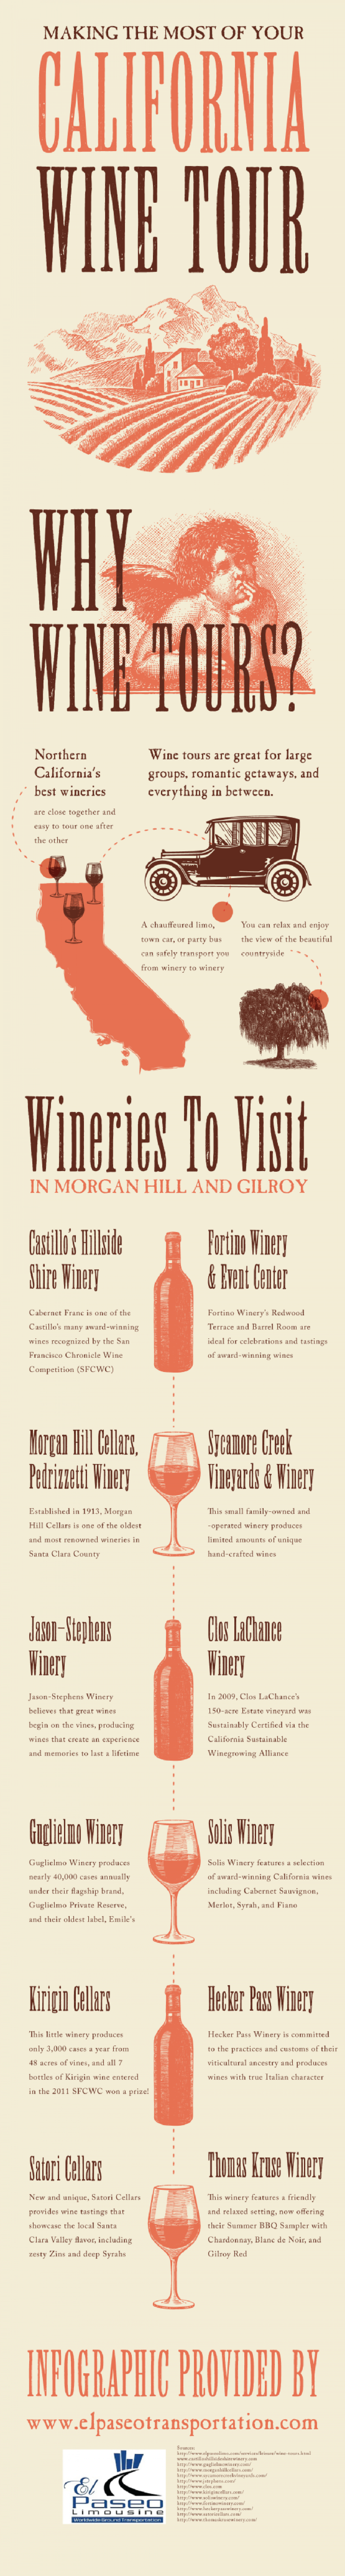 Making the Most of Your California Wine Tour Infographic